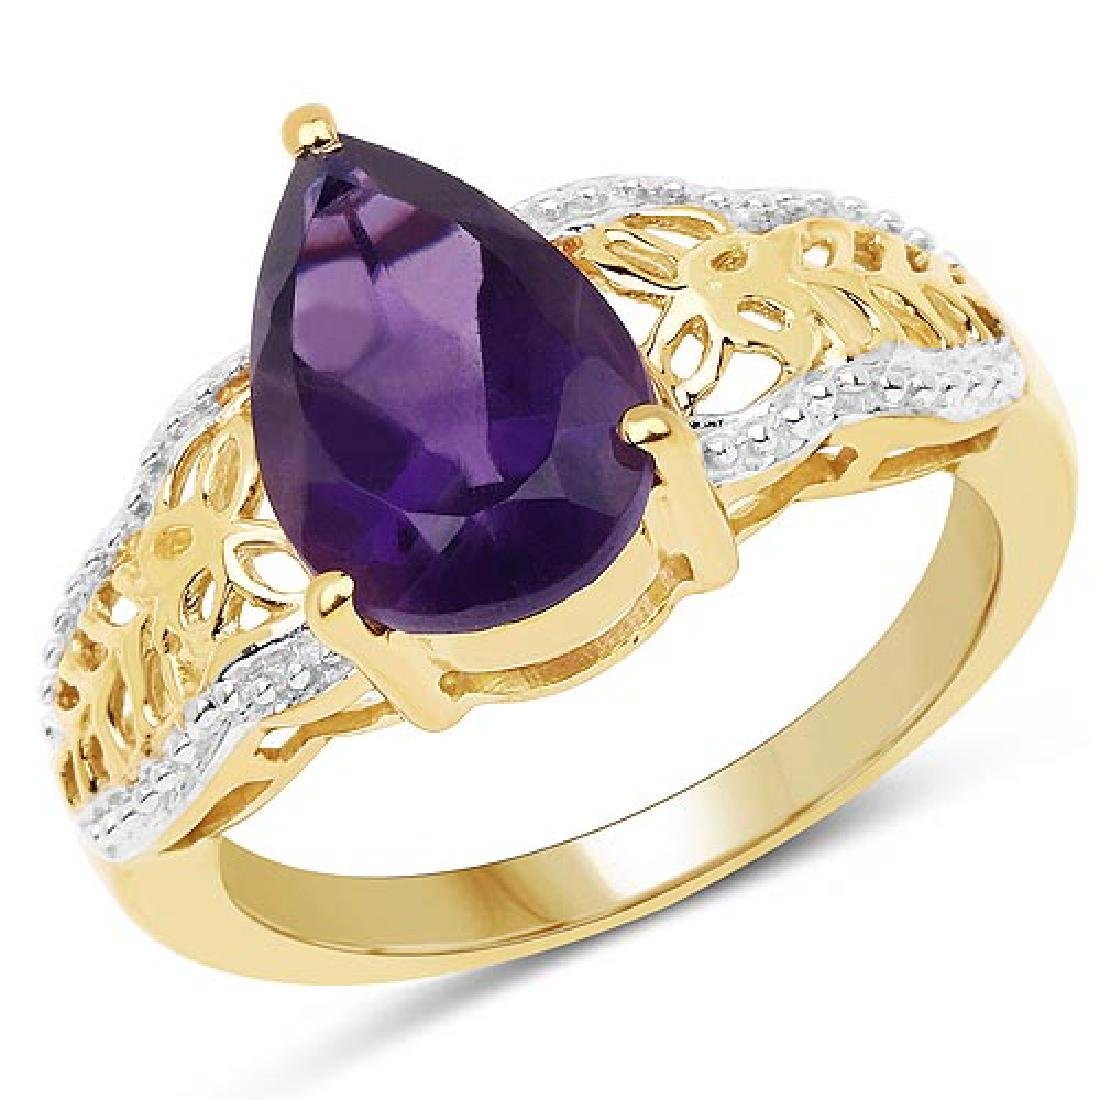 14K Yellow Gold Plated 2.50 Carat Genuine Amethyst .925